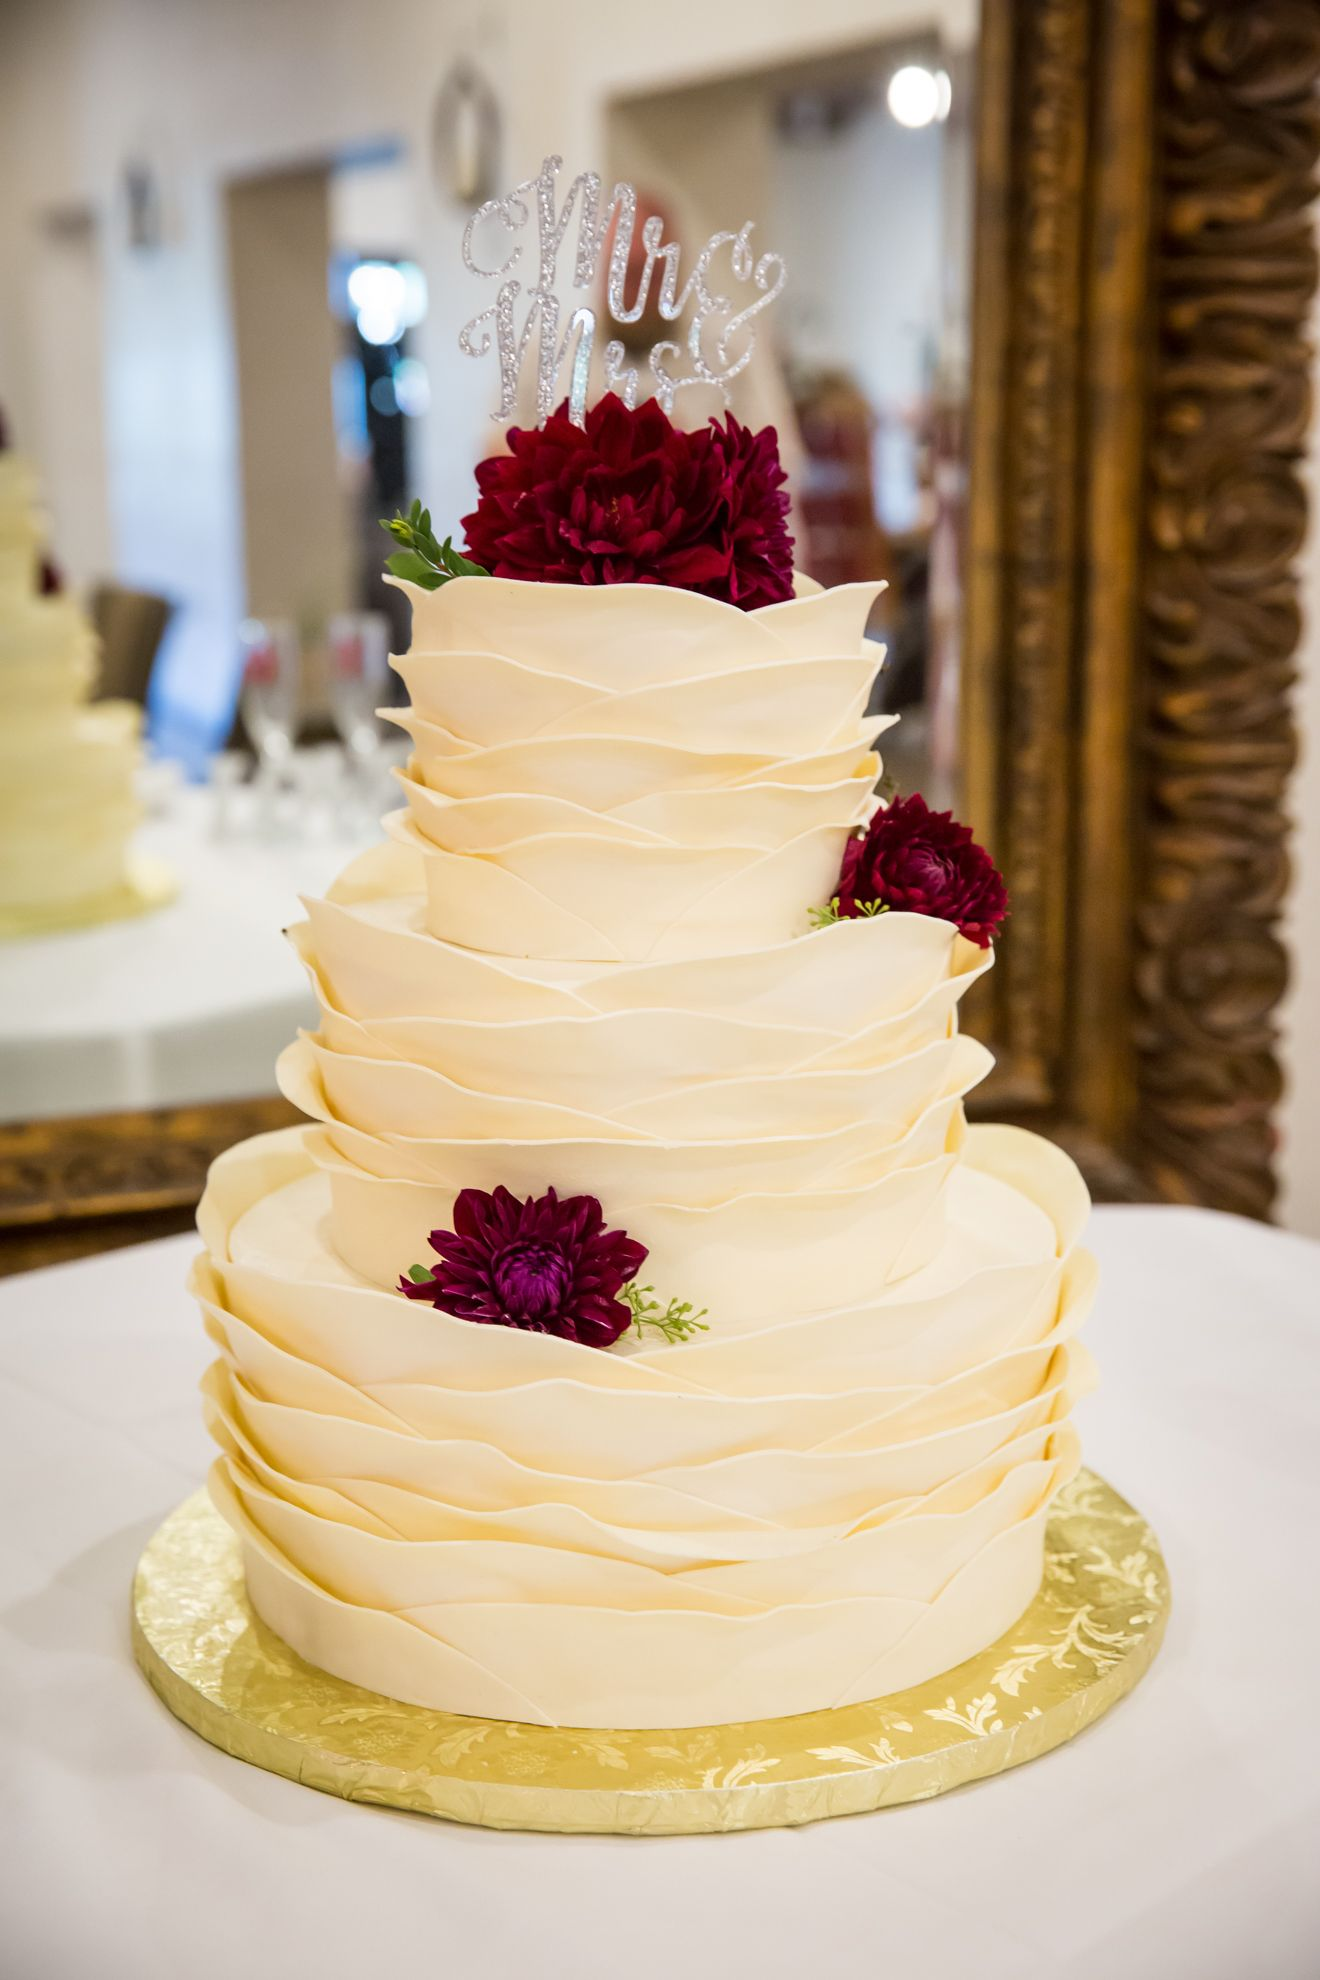 12 Show-Stopping Wedding Cakes Almost Too Pretty to Slice | Weddings ...